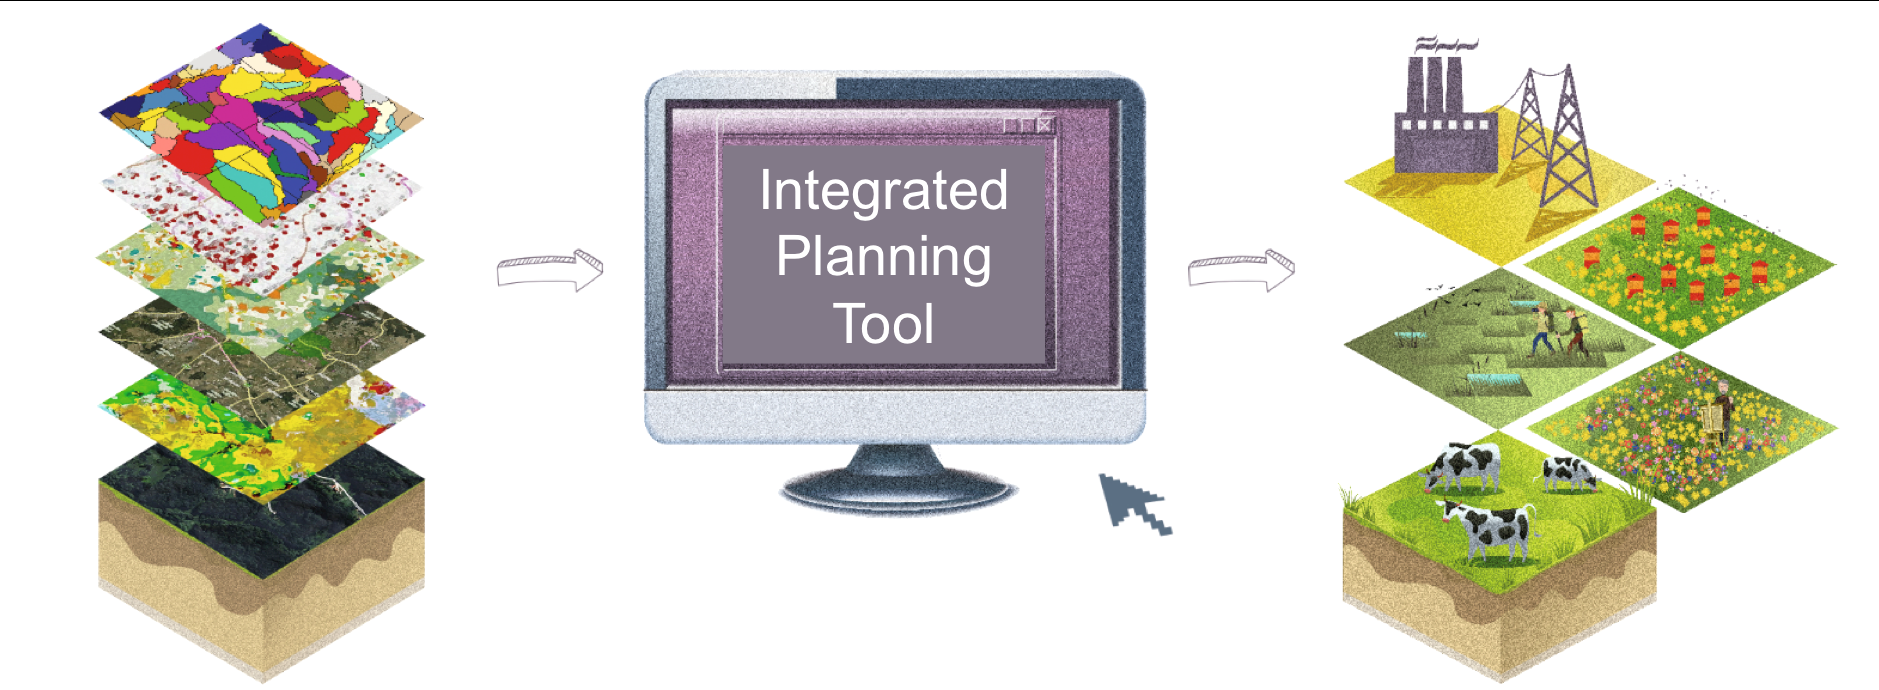 integrated-planning-tool